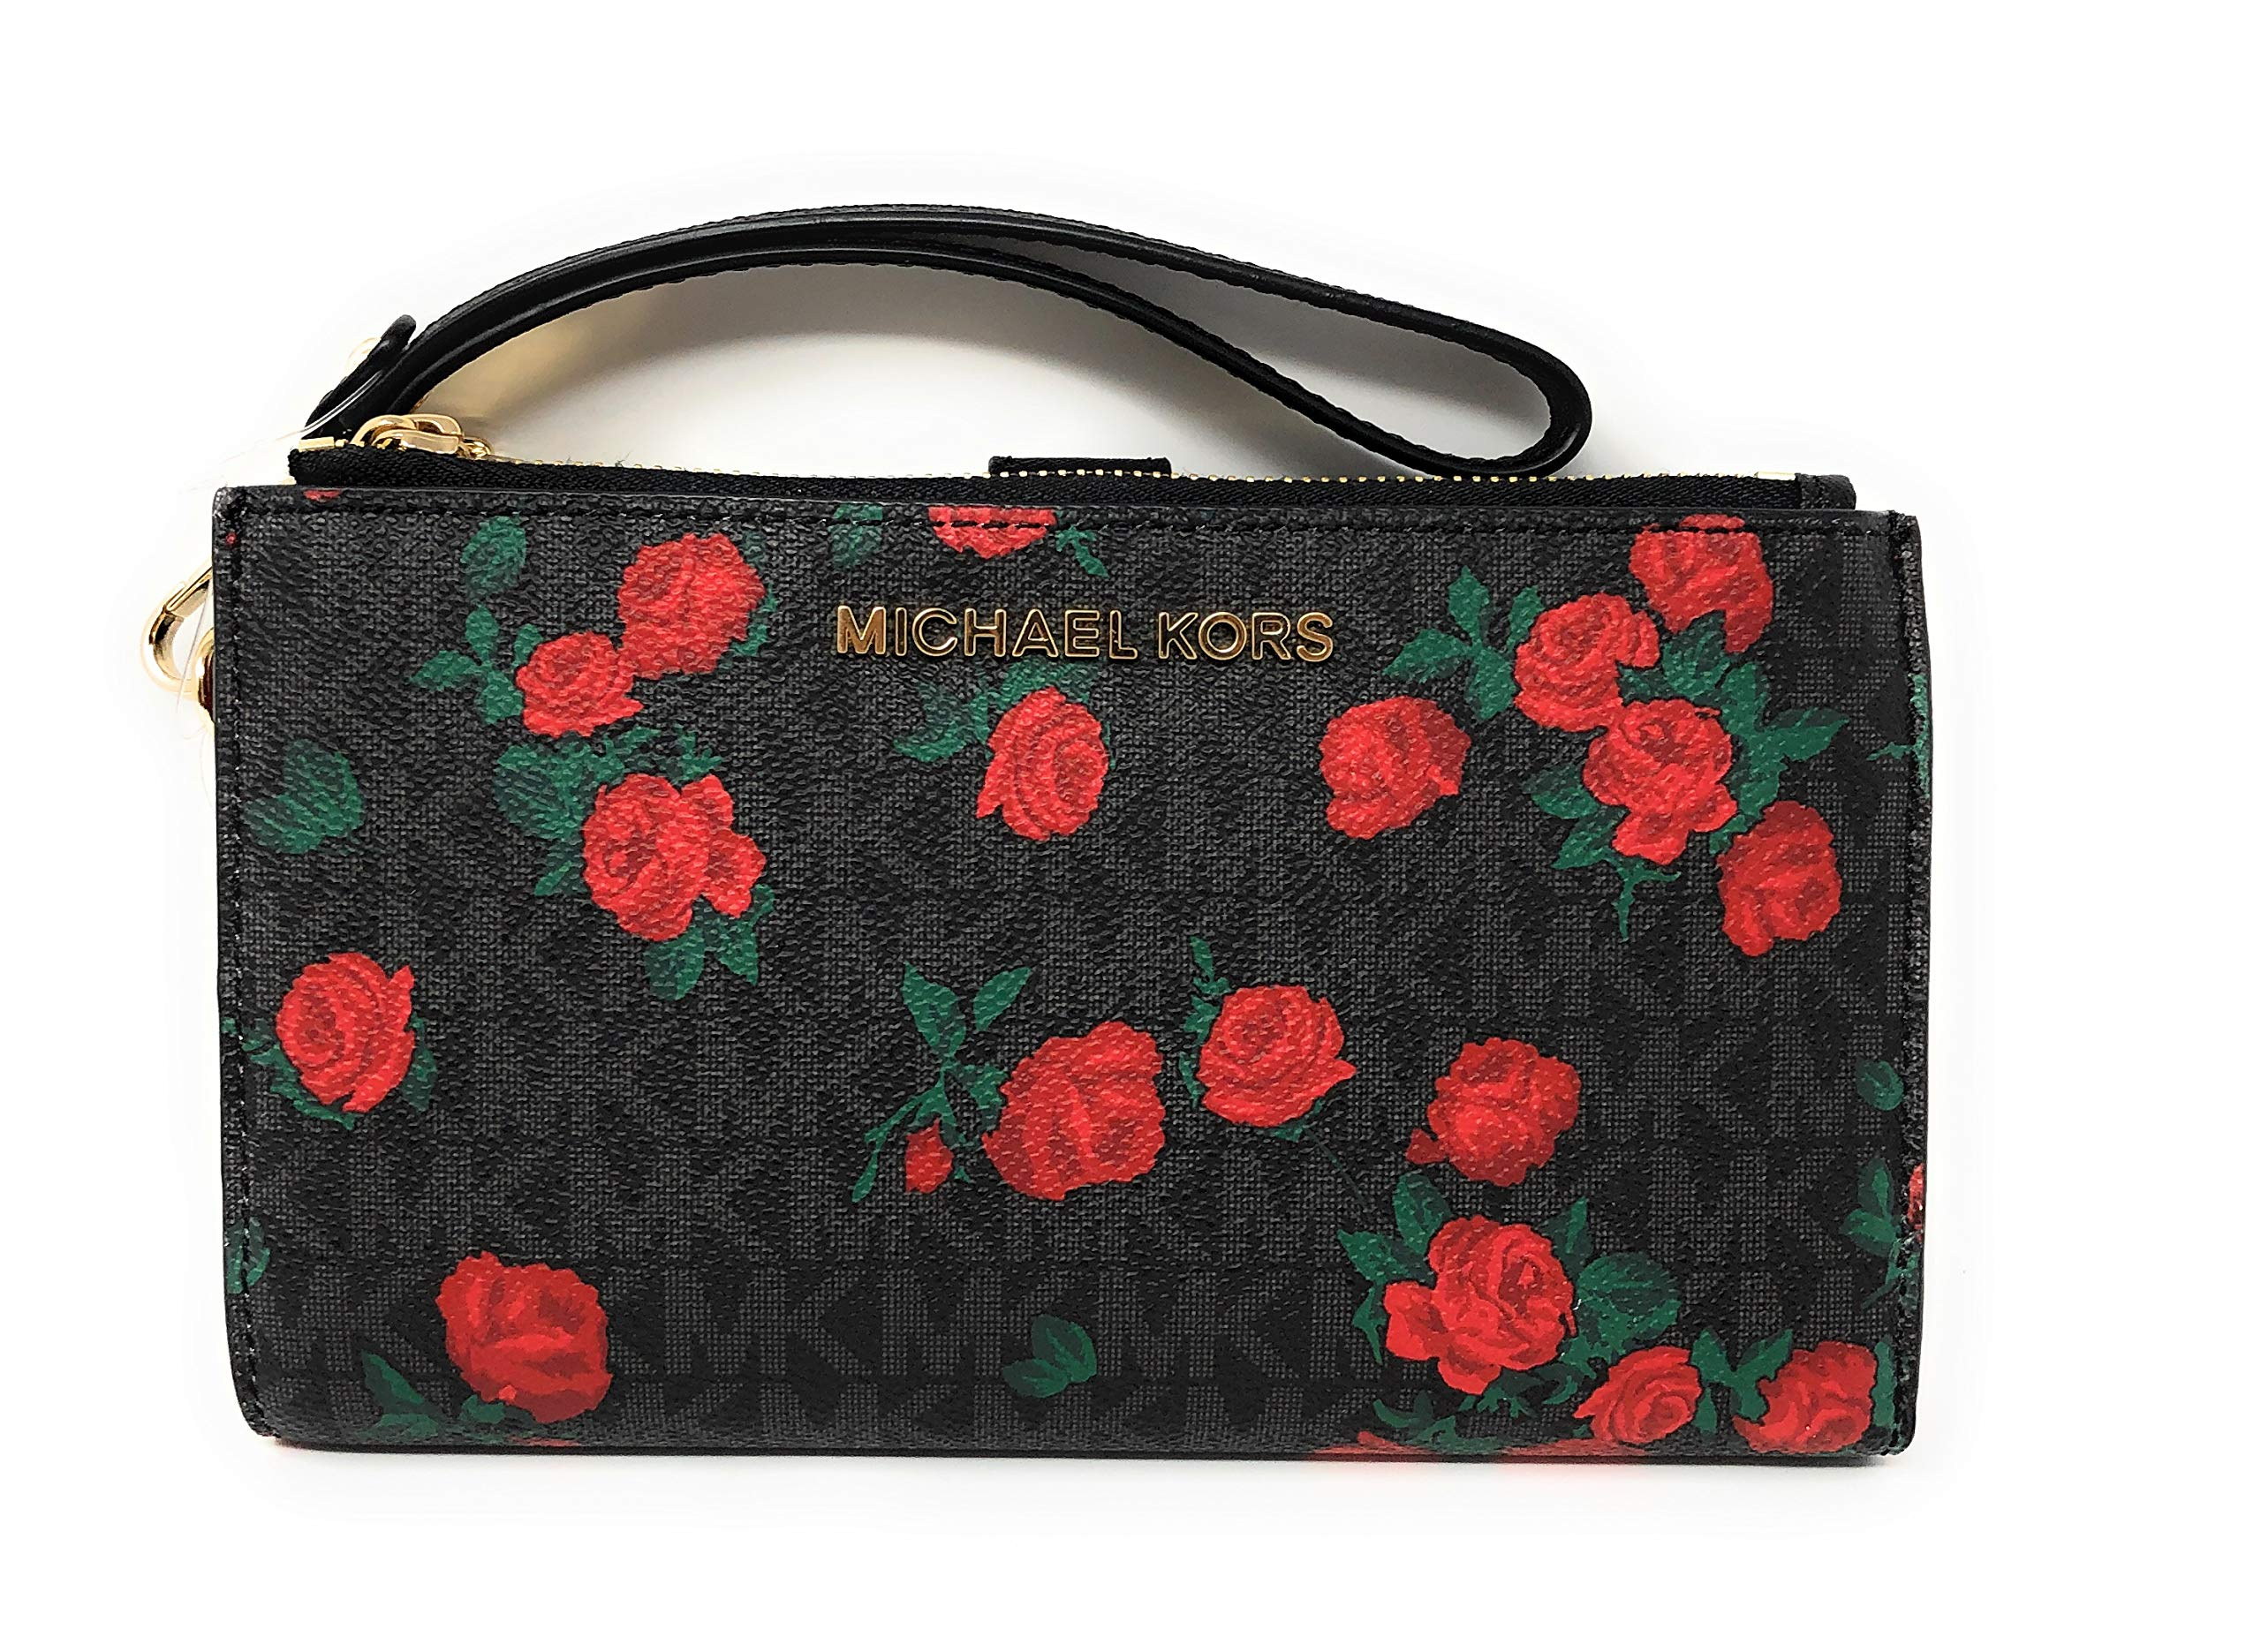 Michael Kors Jet Set Travel Double Zip Saffiano Leather Wristlet Wallet (PVC Black/Red Rose) by Michael Kors (Image #1)